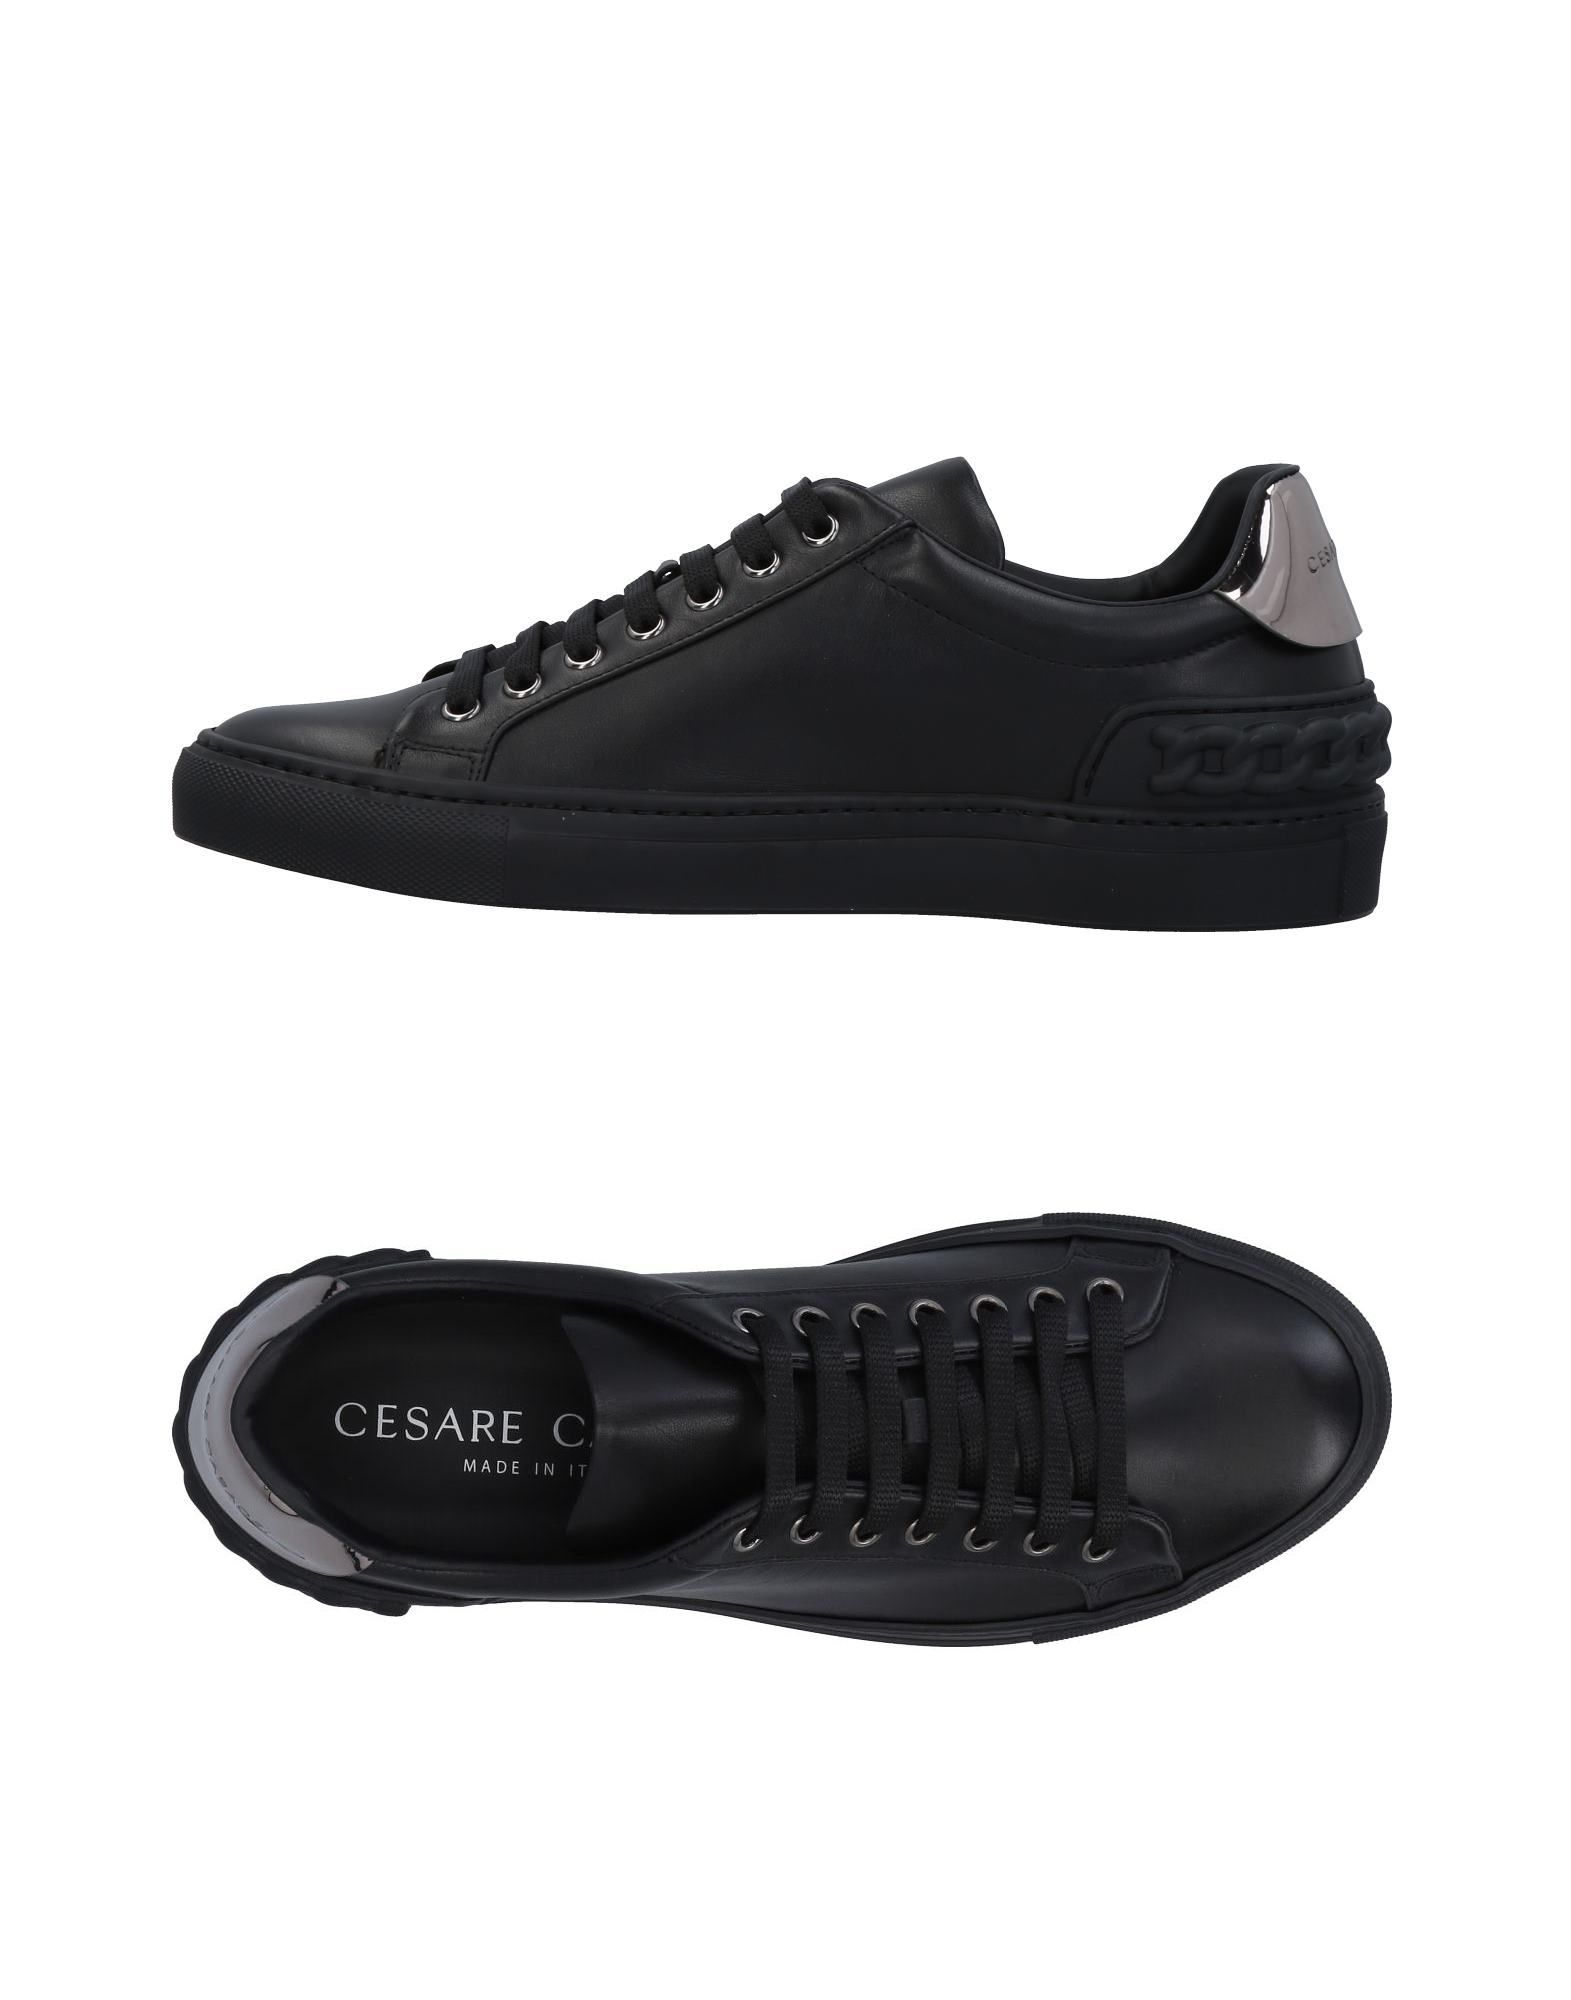 CHAUSSURES - BottinesAsfvlt Sneakers aVgDK9nCb